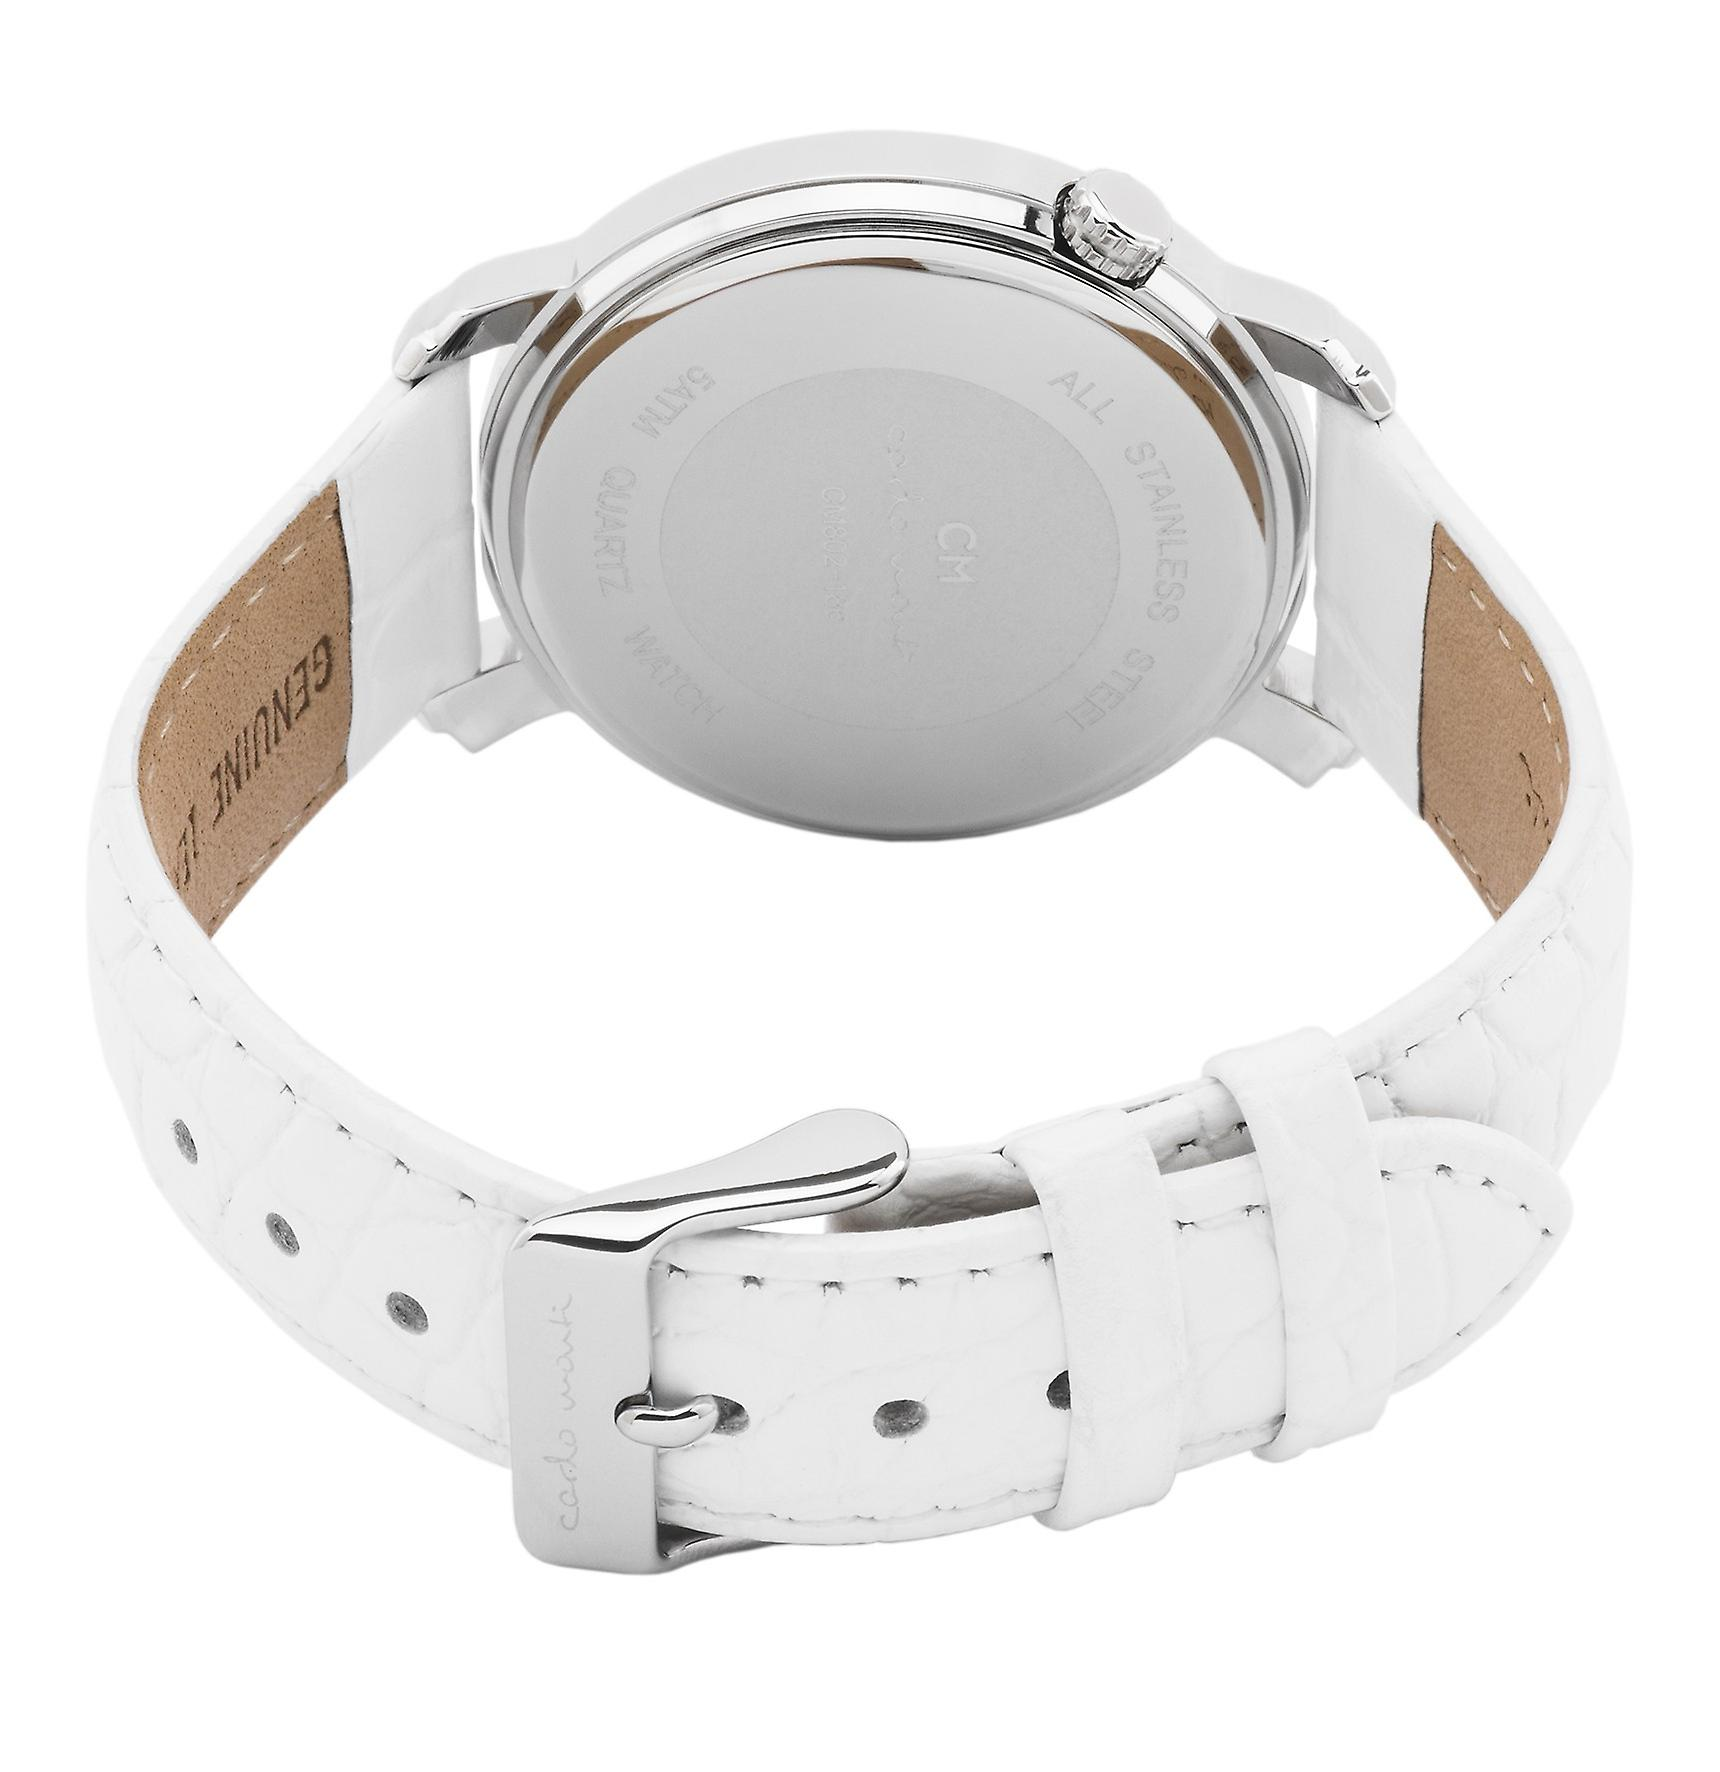 Carlo Monti ladies quartz watch Matera, CM802-186